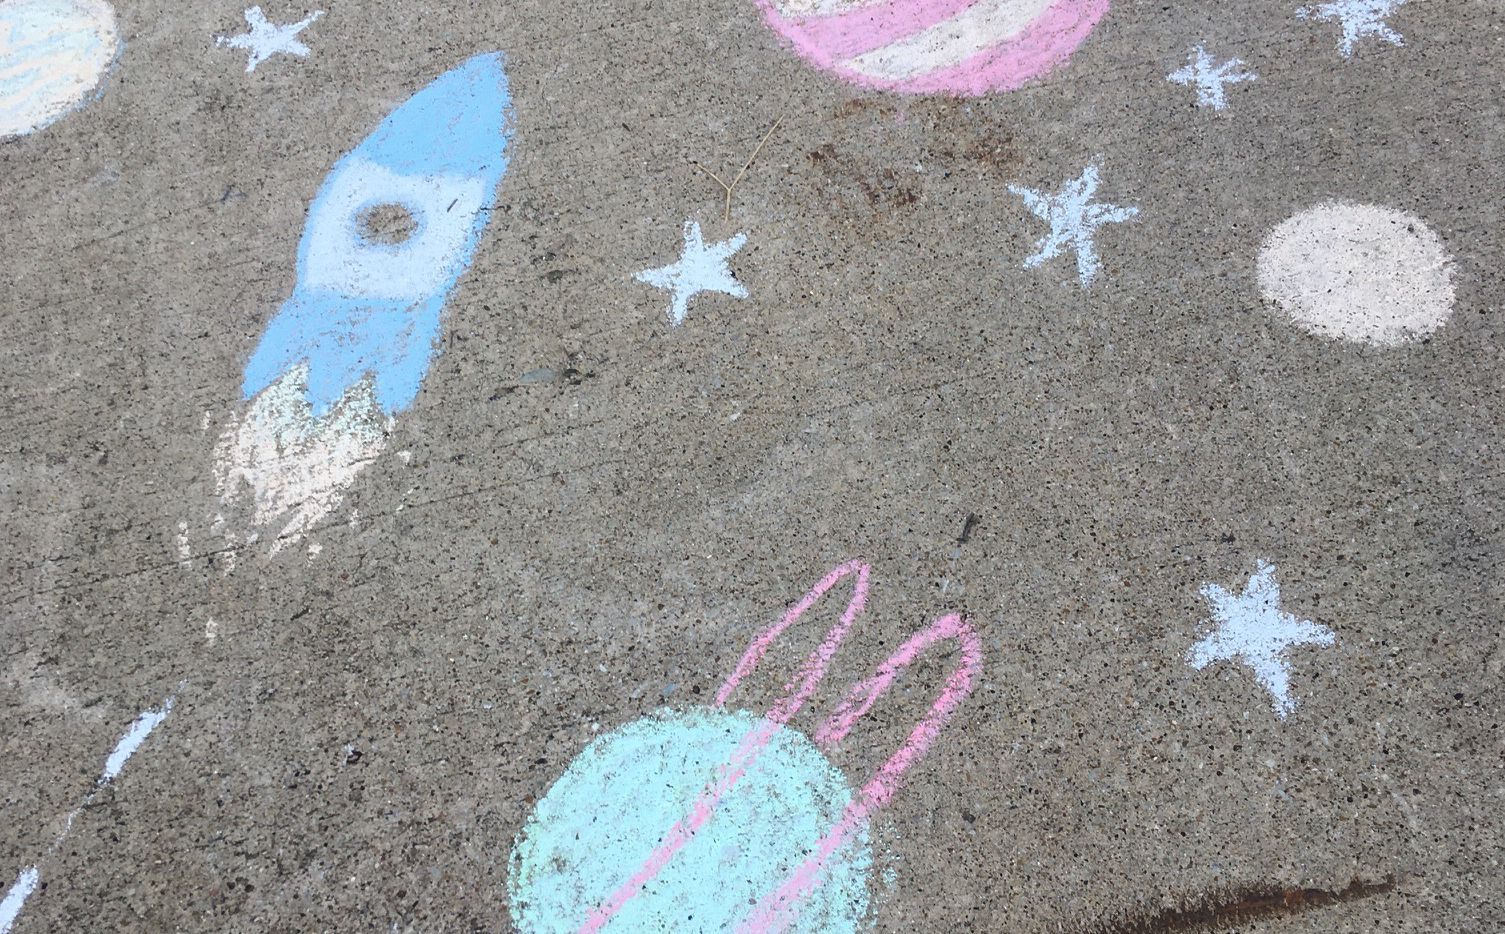 This sidewalk chalk drawing inspired writer Leslie Barker on her morning runs.